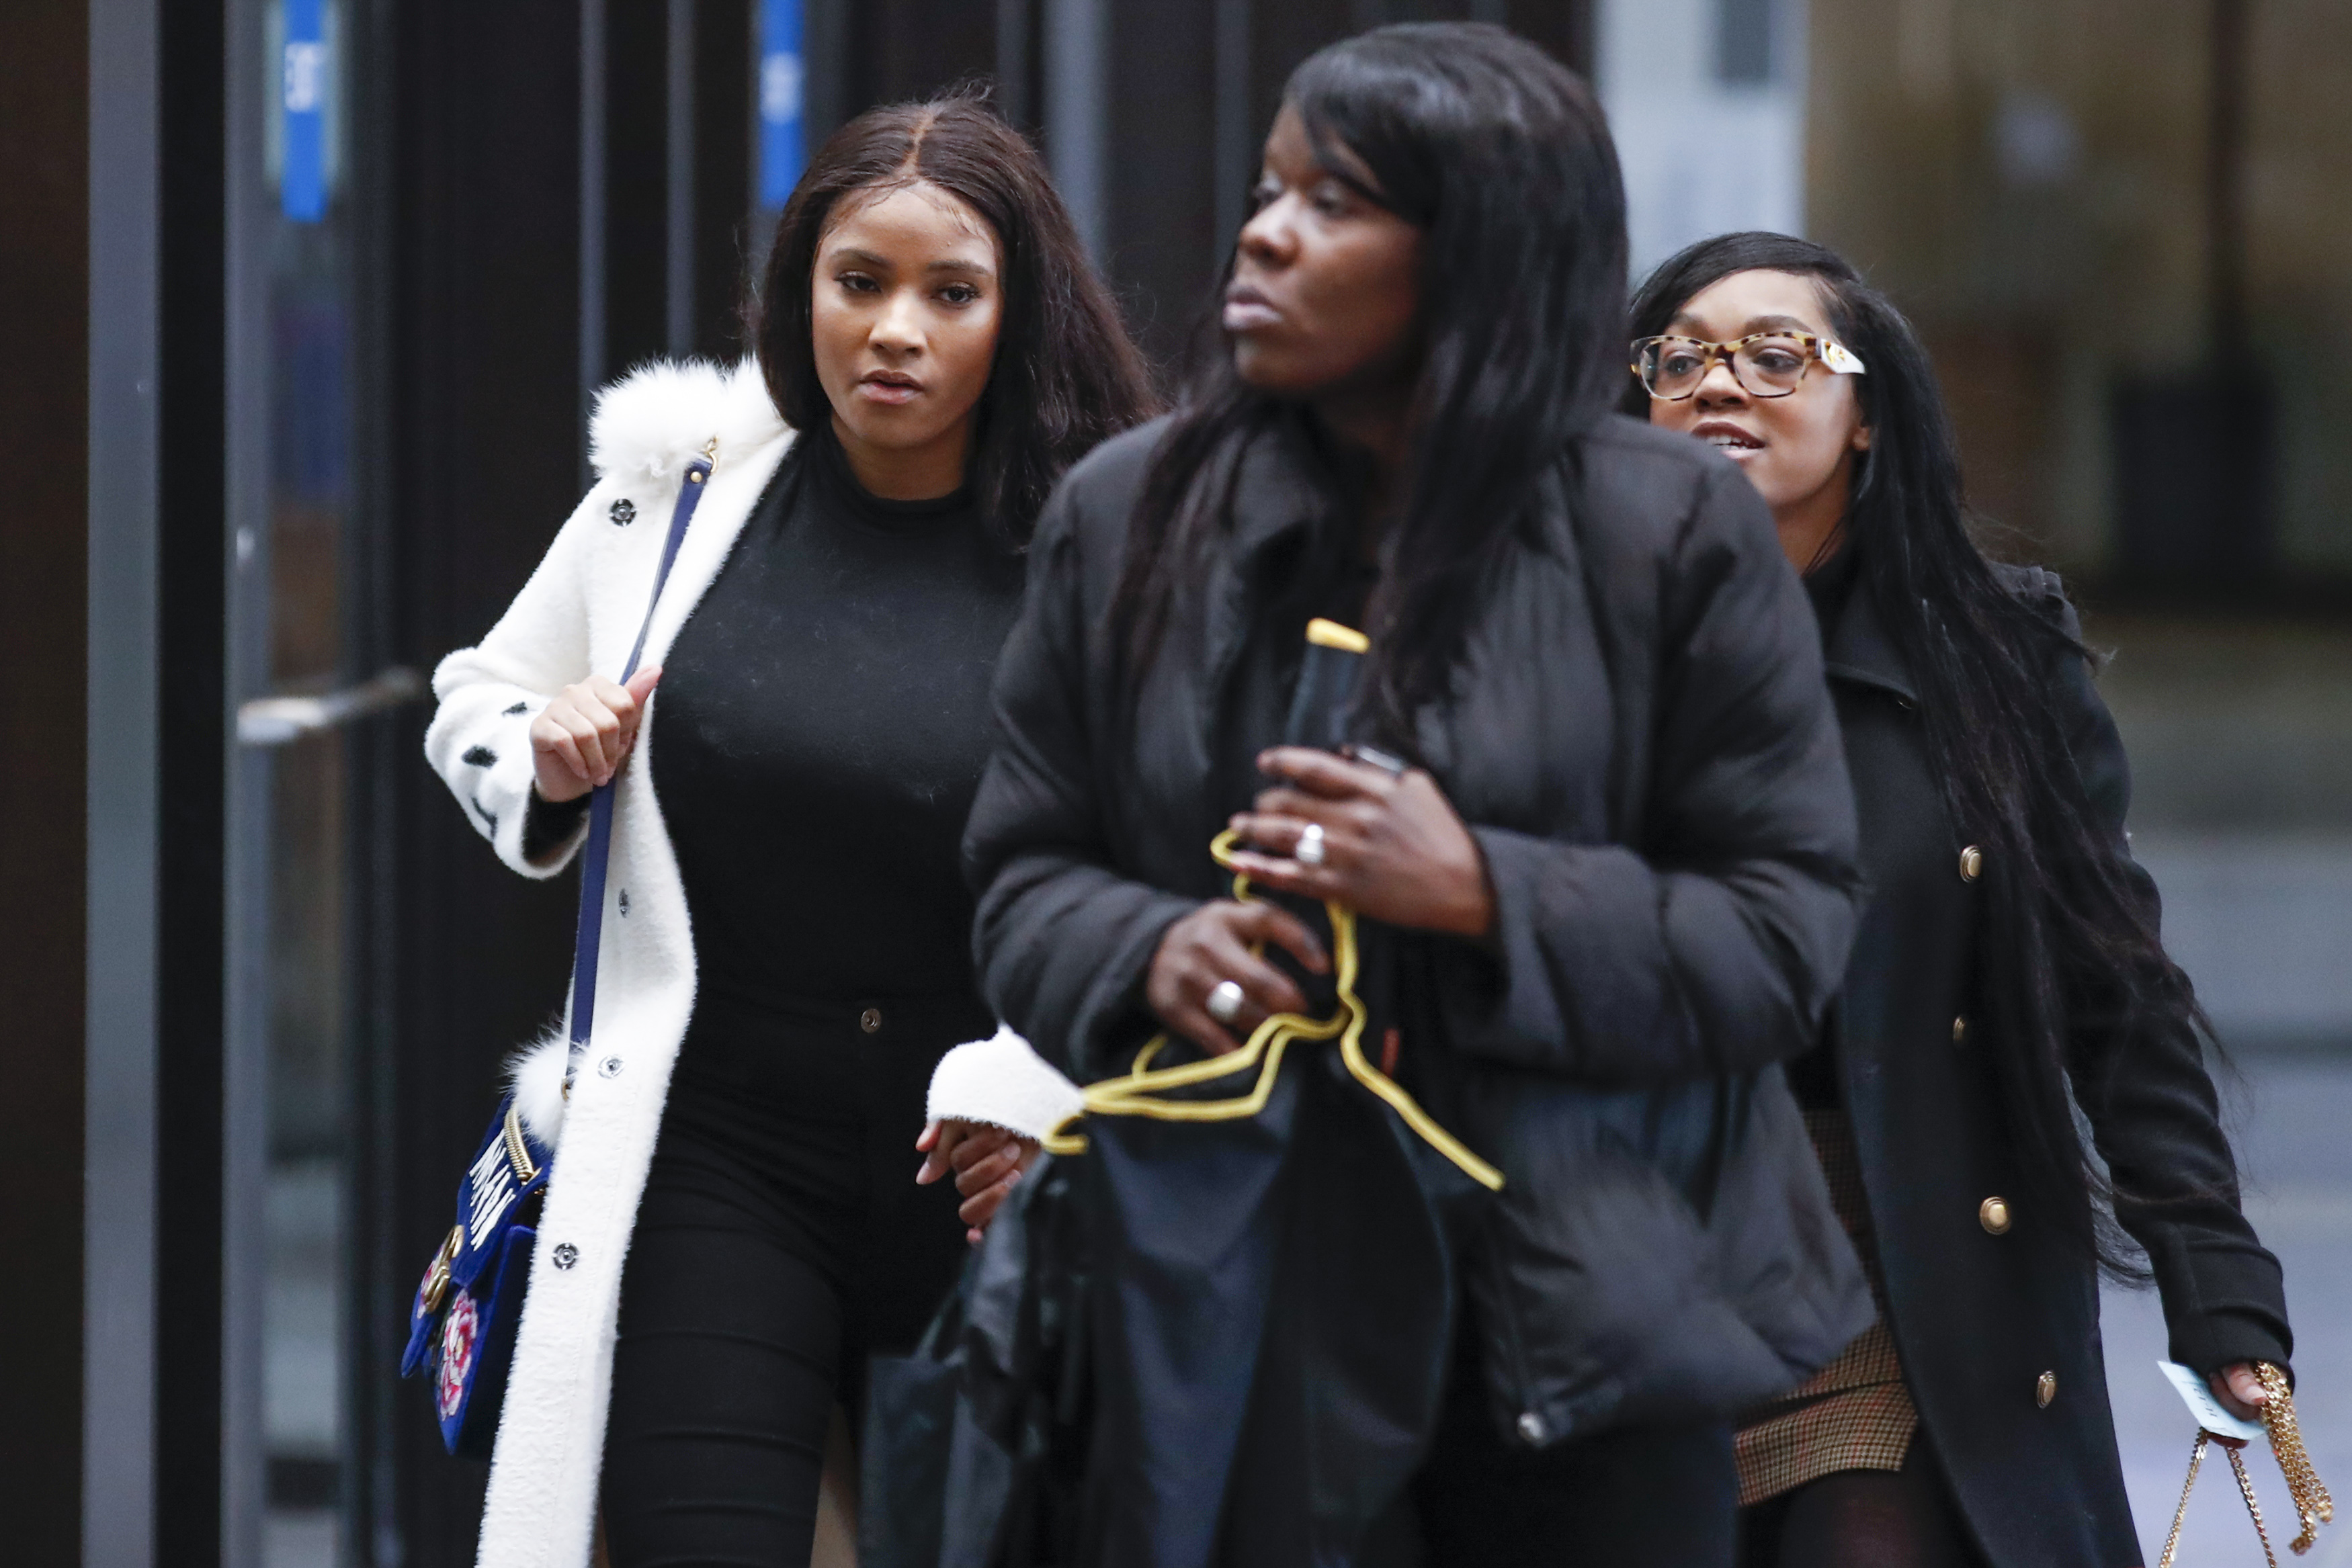 Joycelyn Savage and Azriel Clary support R Kelly at court